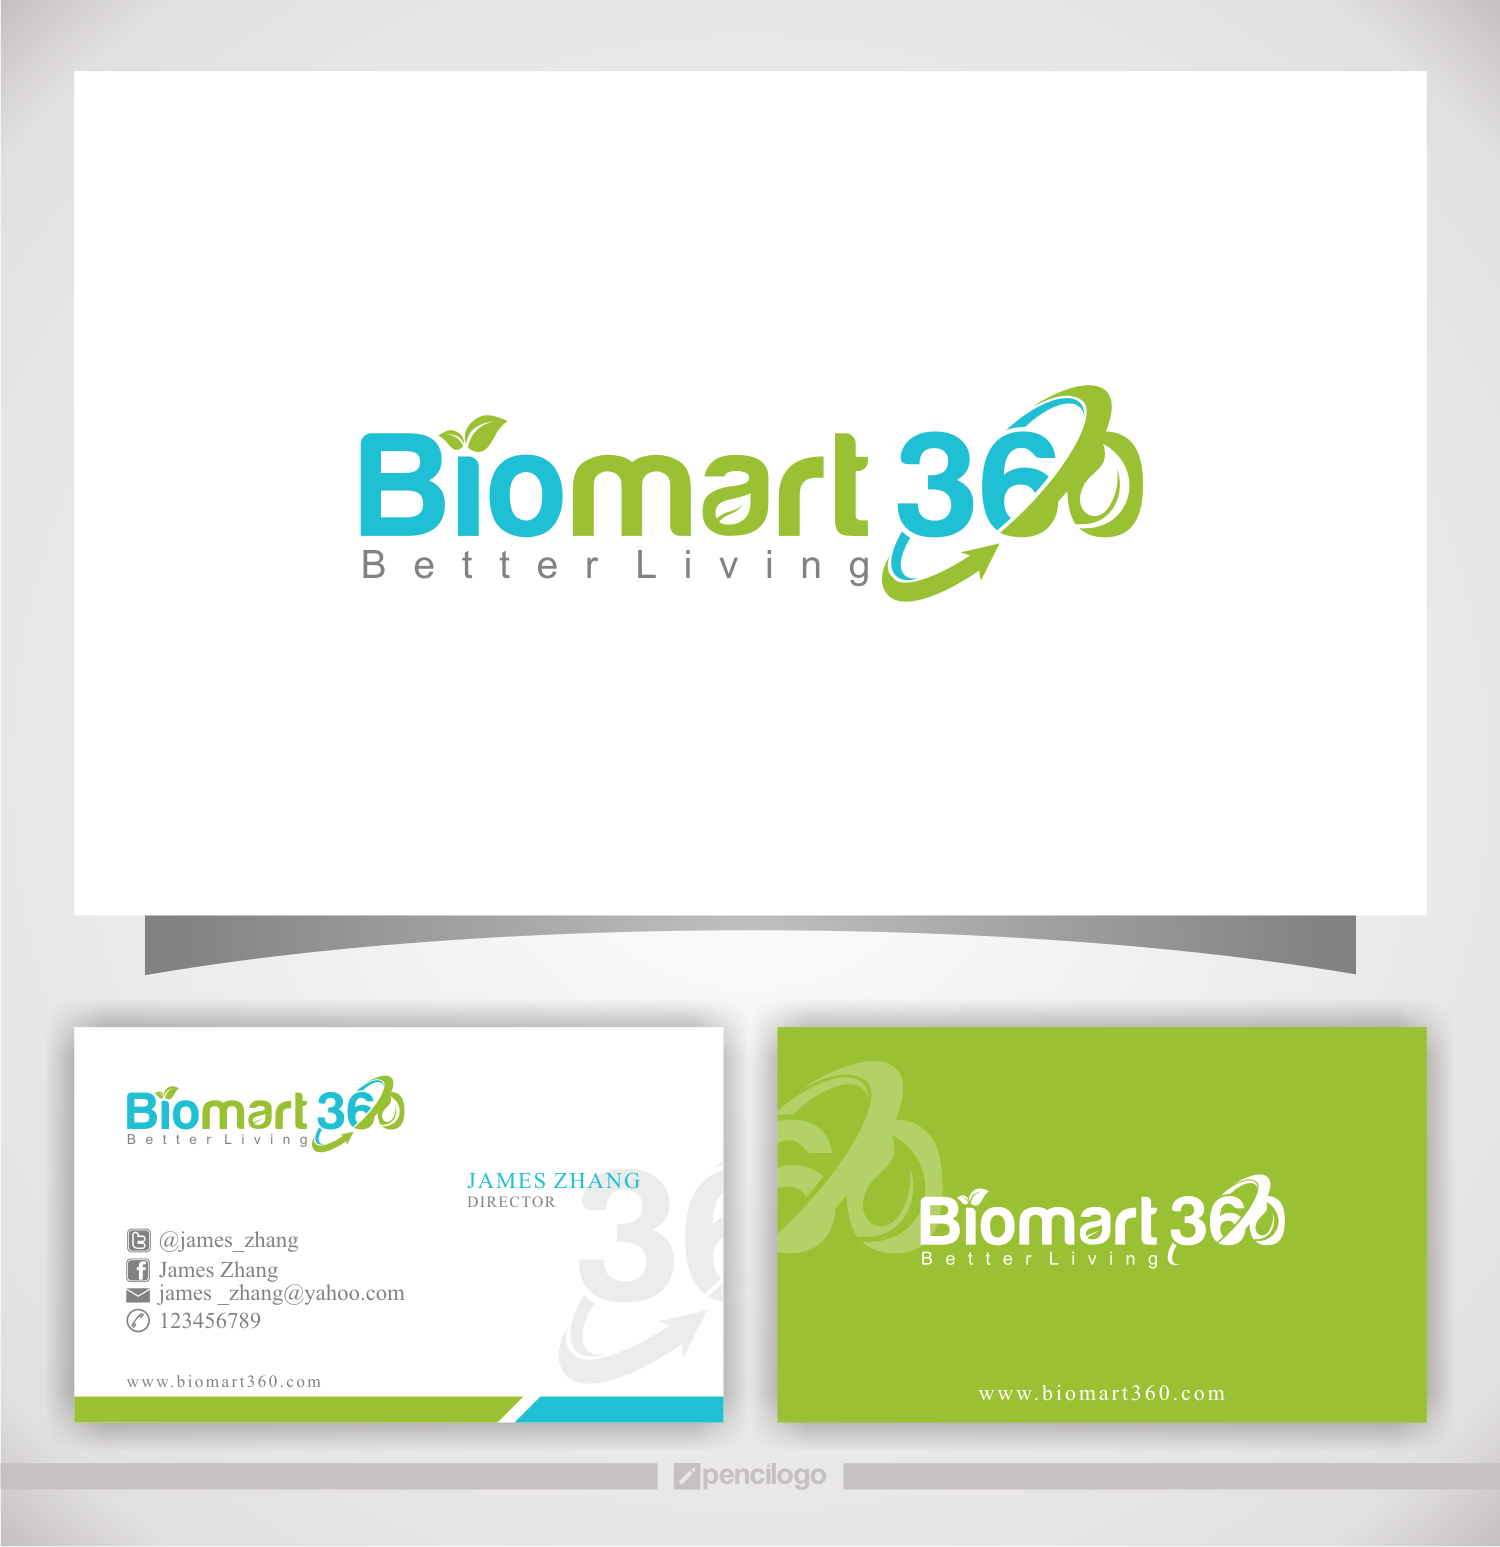 Help Biomart360 with a new logo